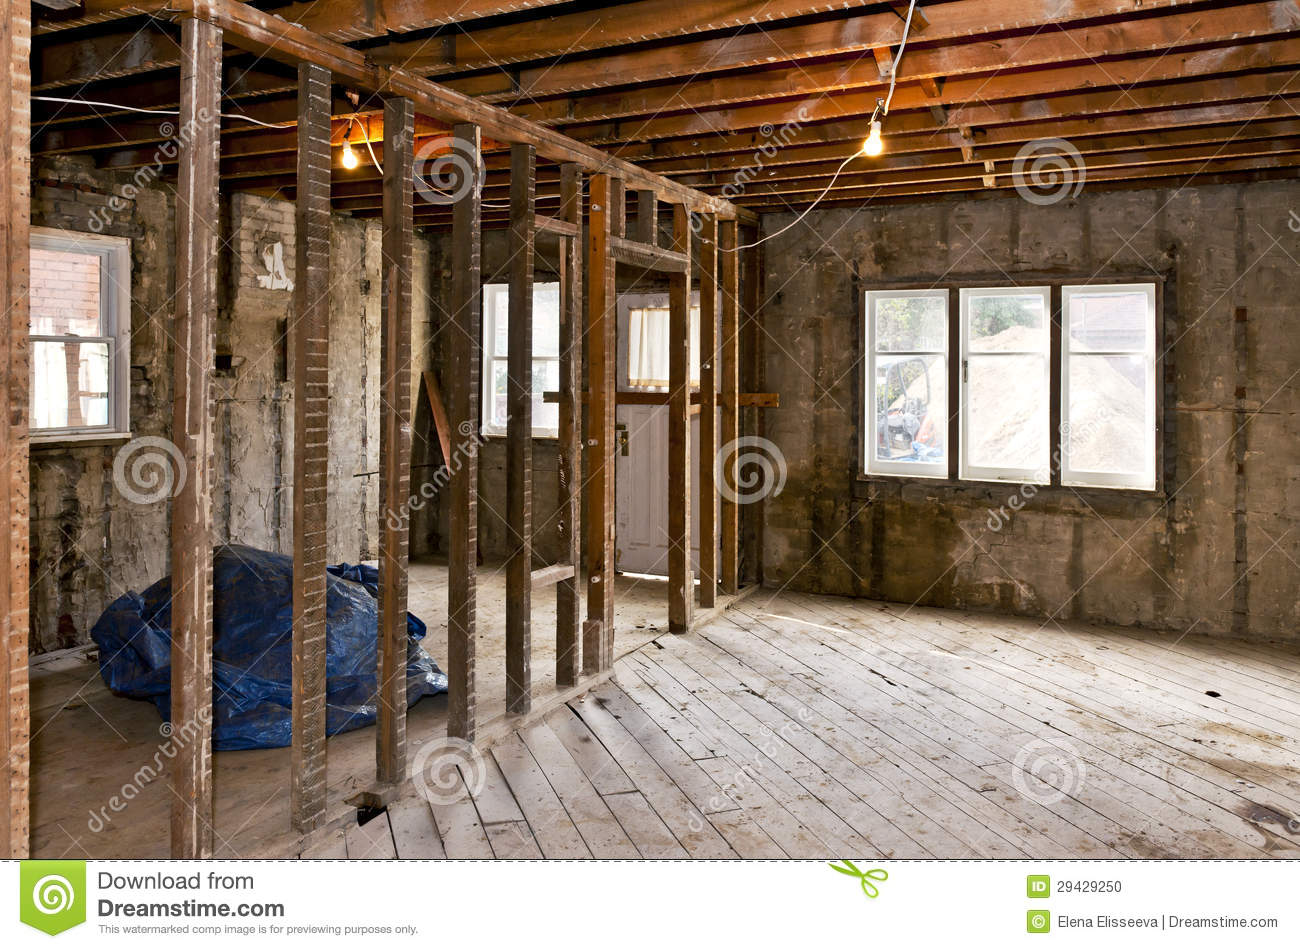 Home interior gutted for renovation stock photo image for Home interior sites